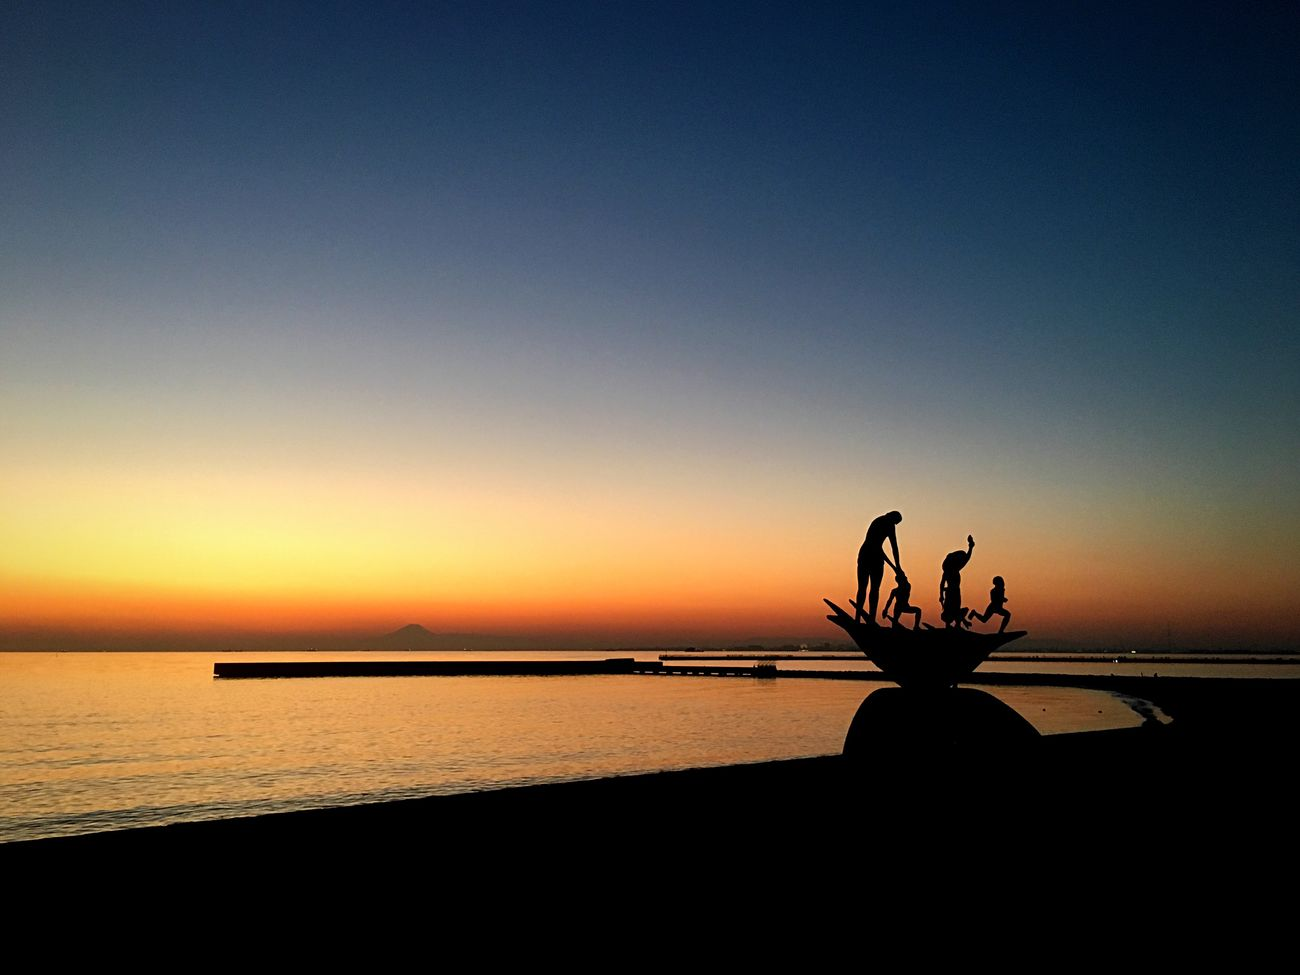 Sunset Water Silhouette Sea Nature Clear Sky Horizon Over Water Tranquil Scene Outdoors Scenics Statue Japan Chiba Ocean View Tokyo Tokyo Bay Mount FuJi Mount Fuji Views In The Distance